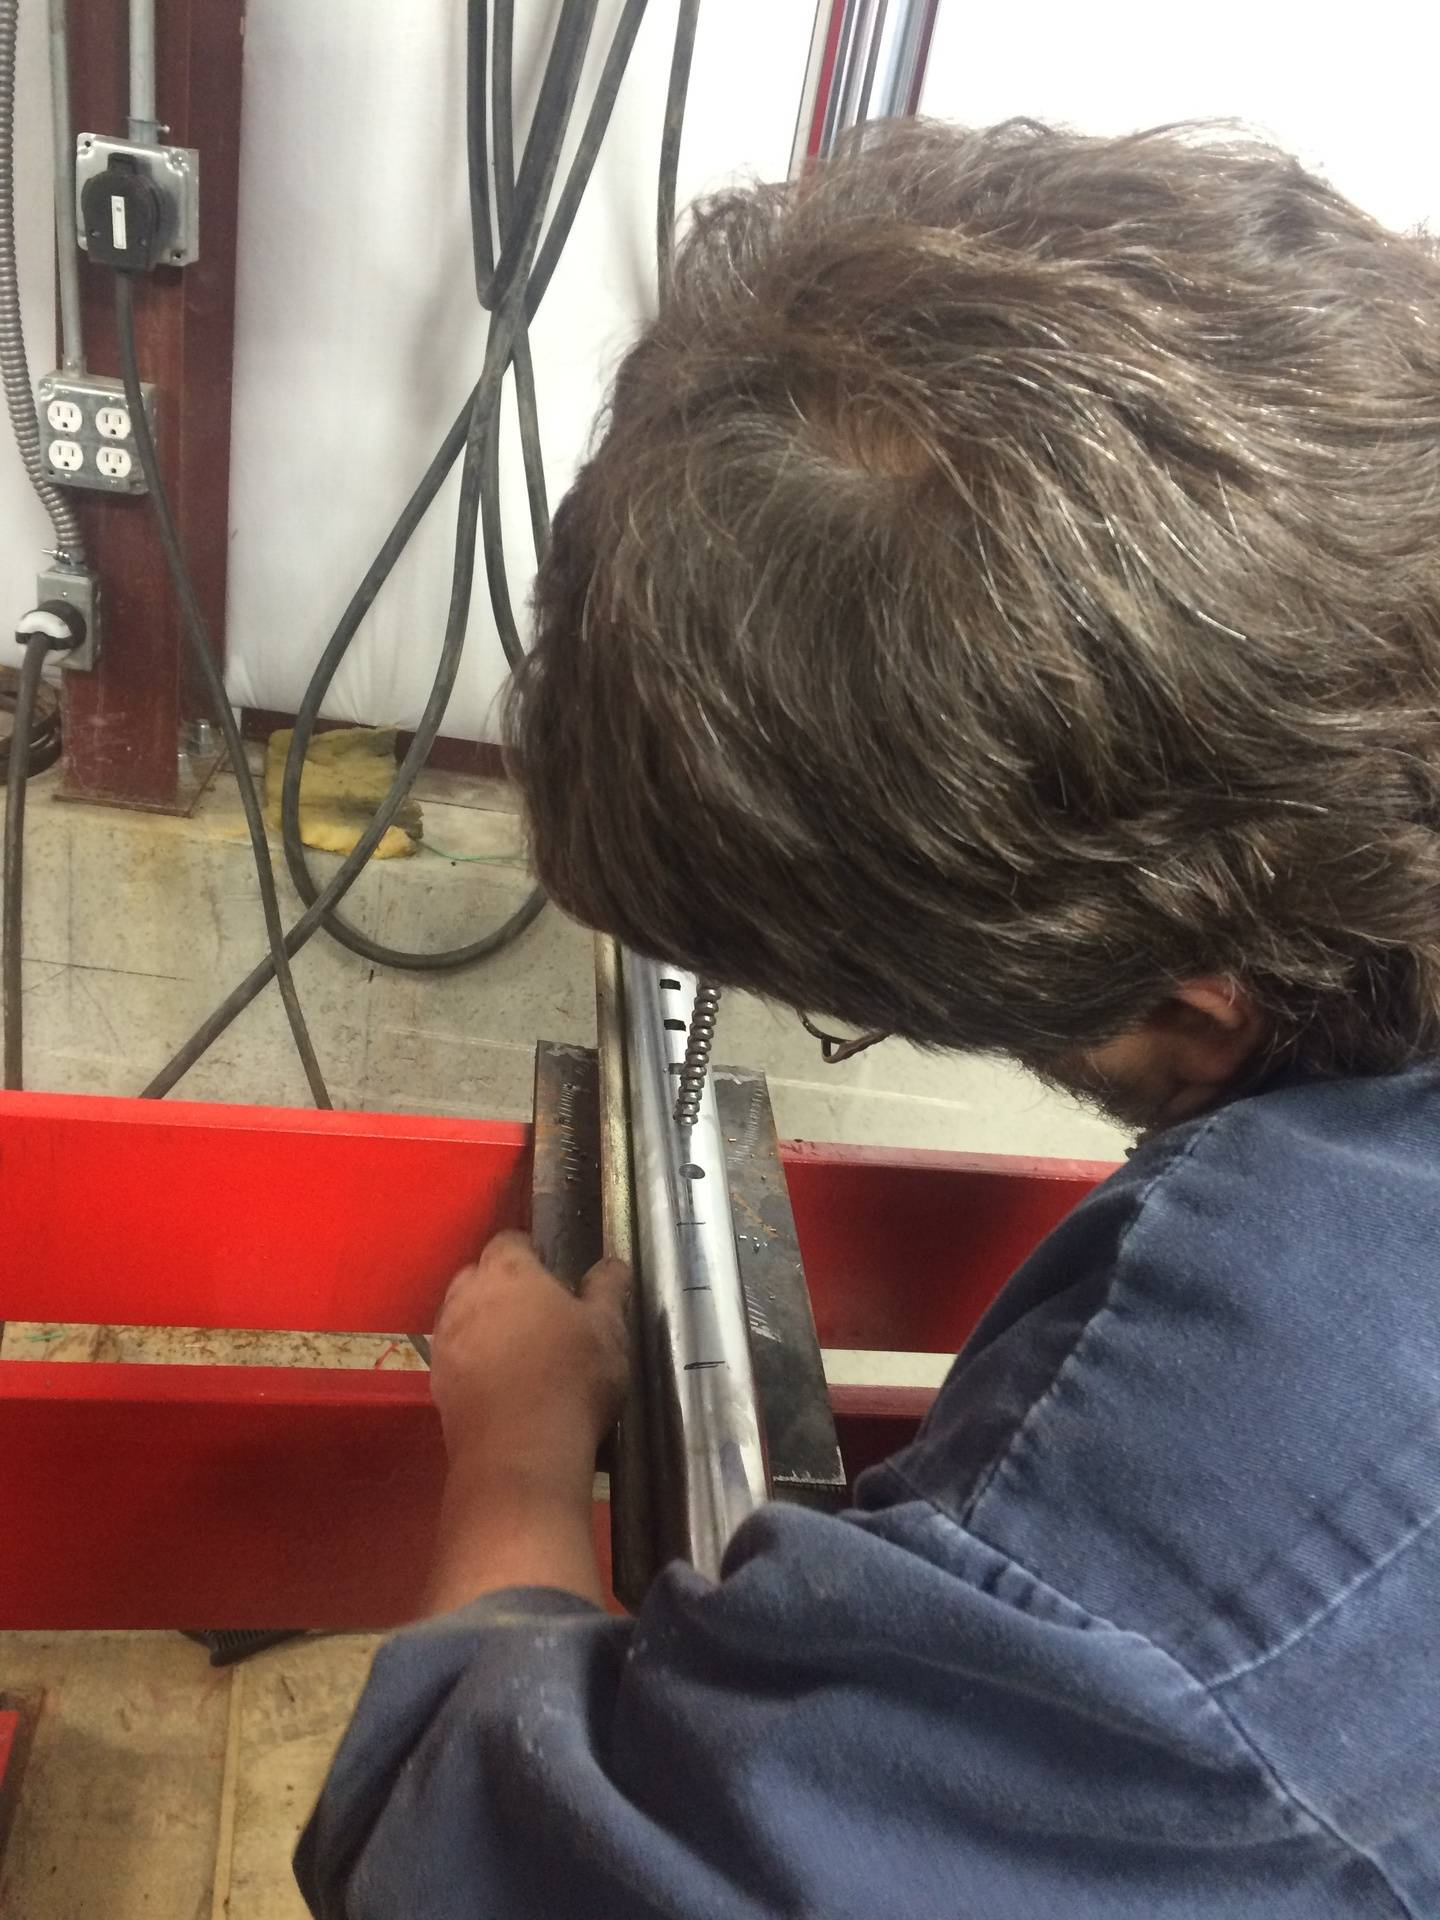 Broaching Square Holes in a Shaft